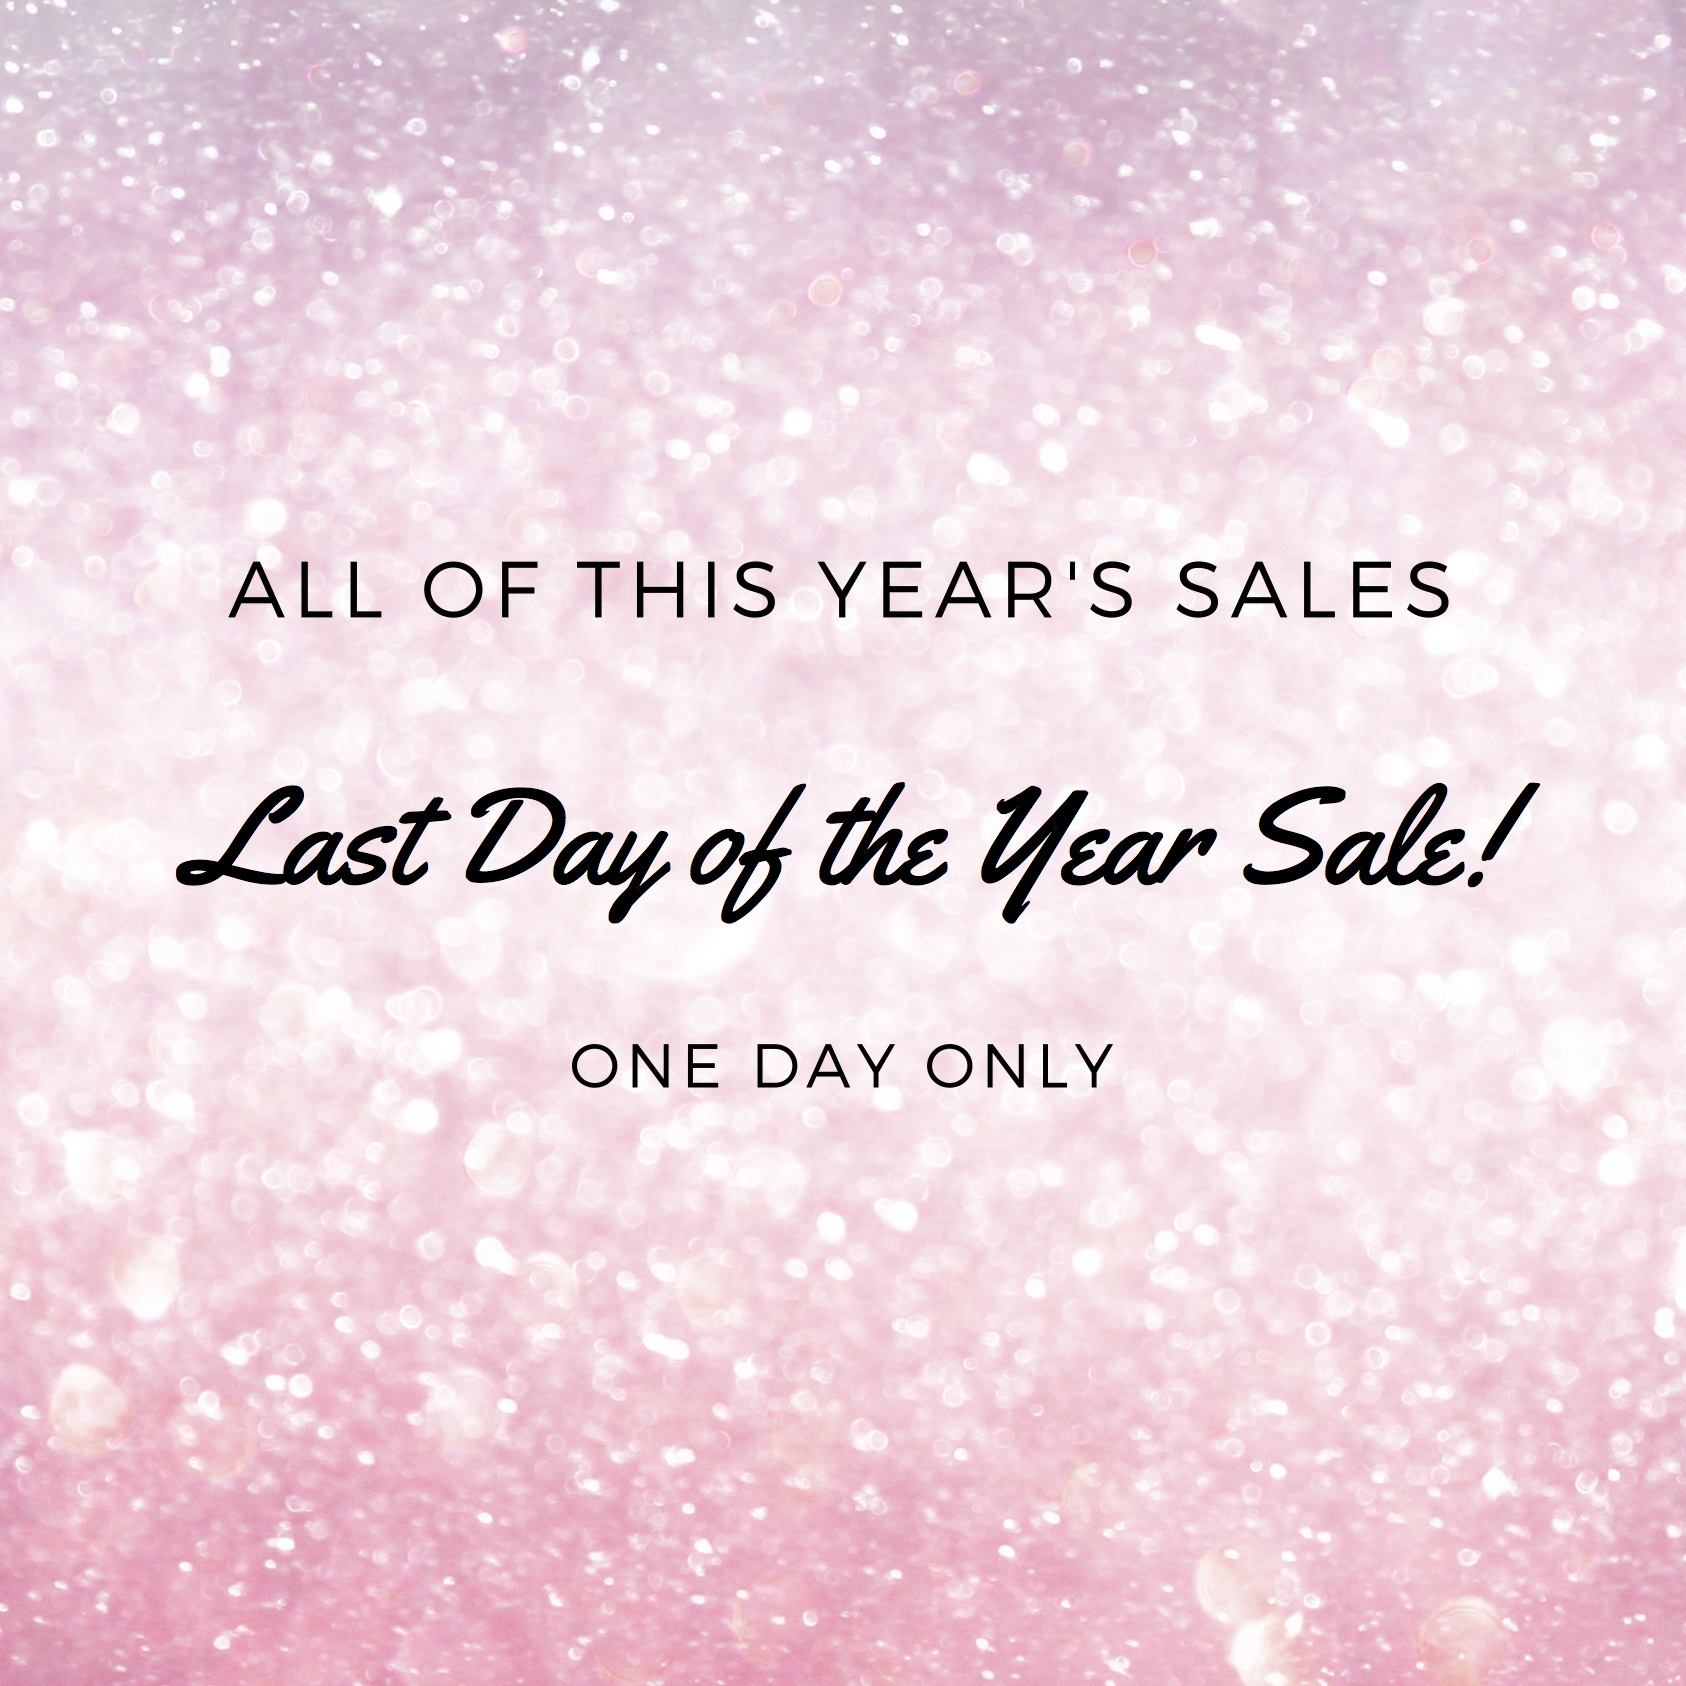 Last Day of the Year Sale!